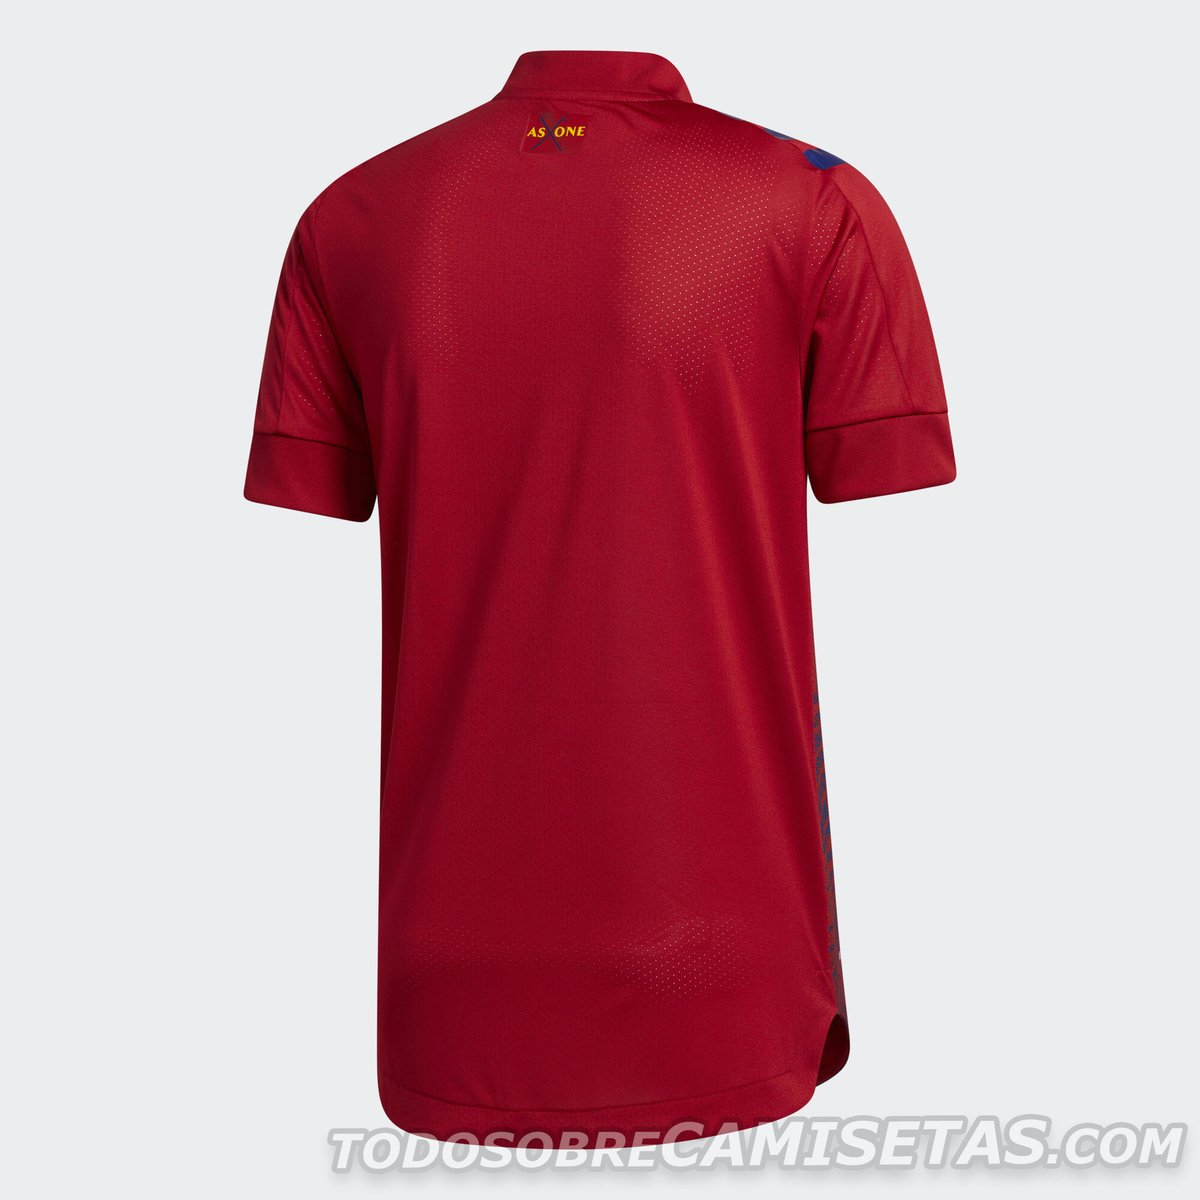 Real Salt Lake 2020 Home Kit